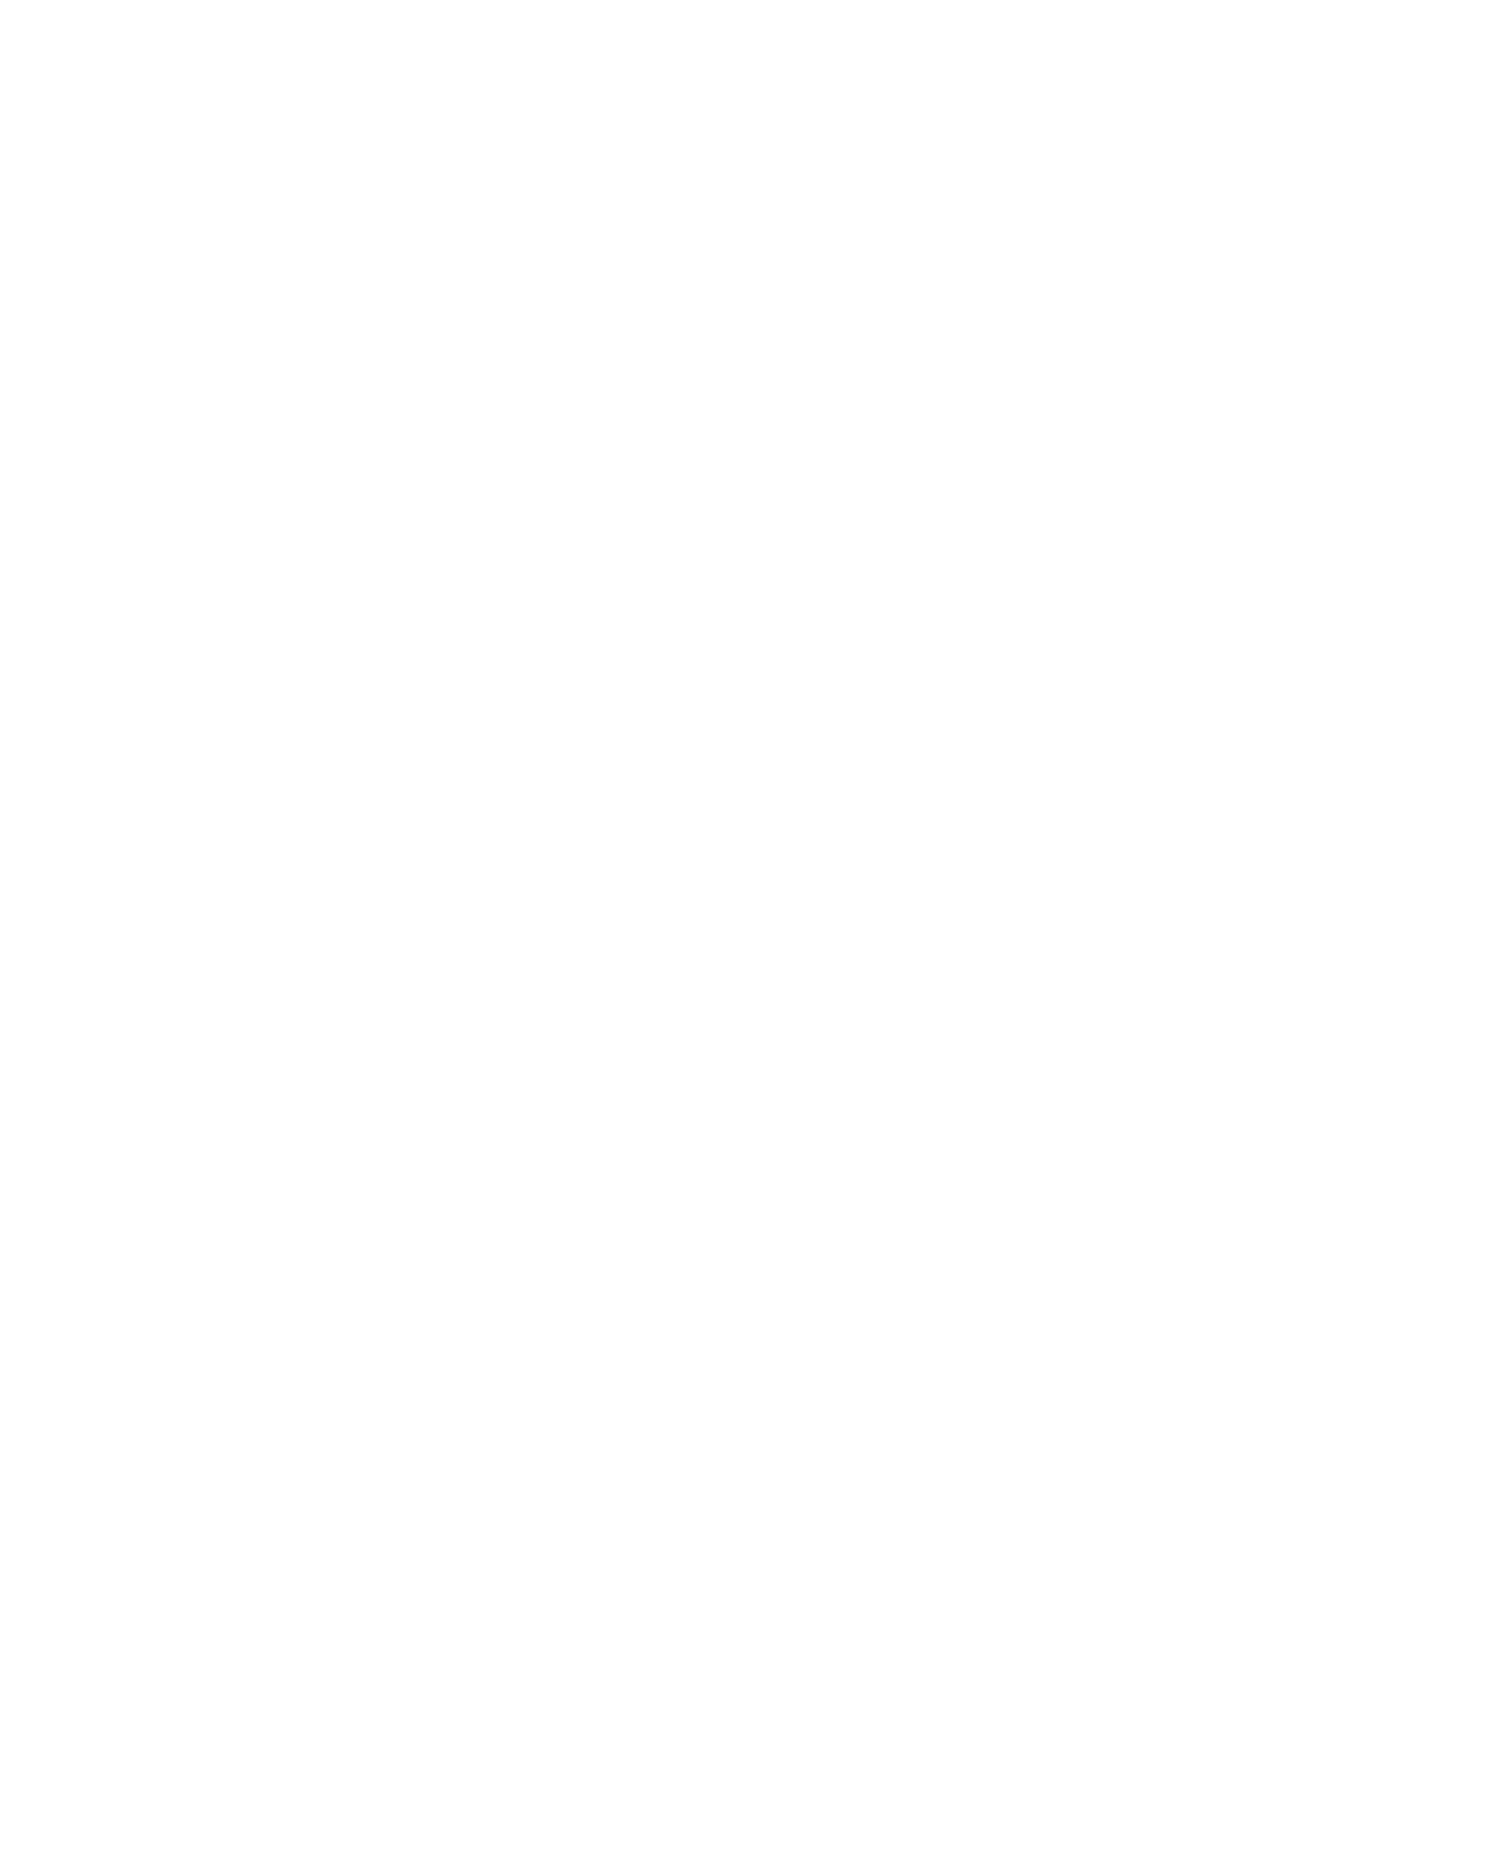 The Optimists Journal